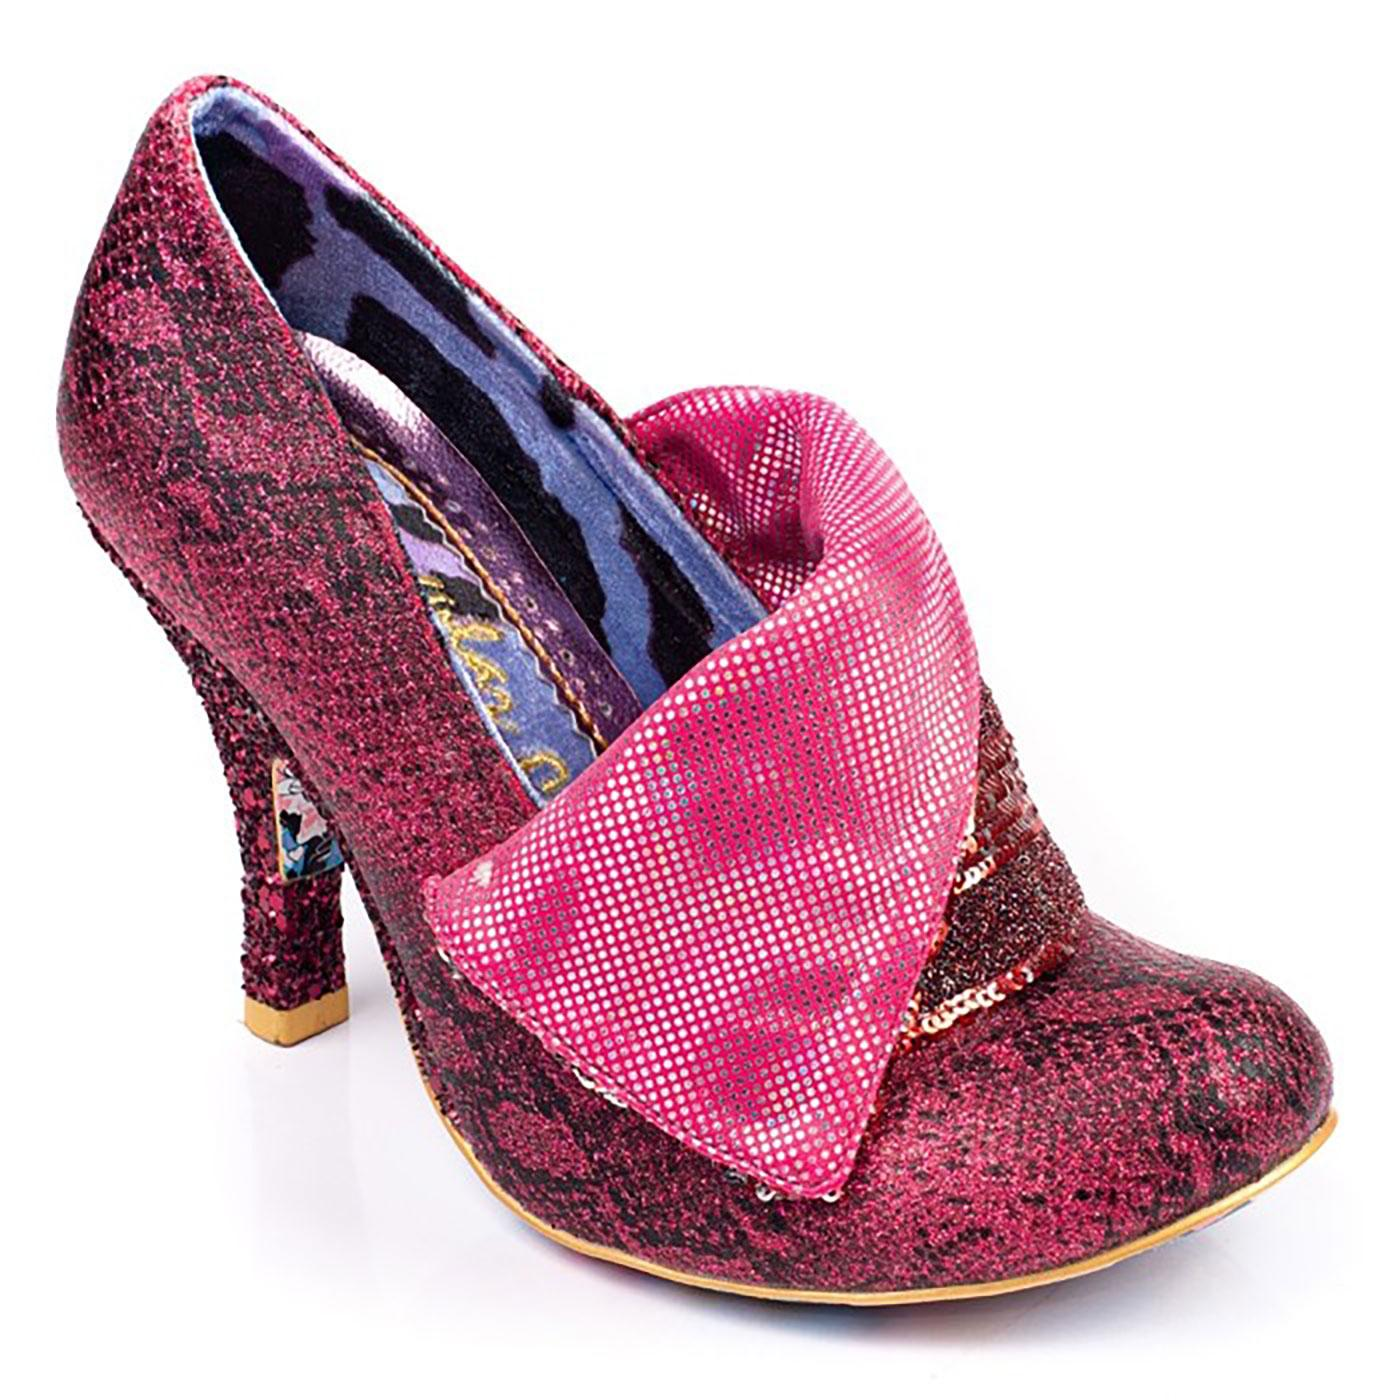 Flick Flack IRREGULAR CHOICE Metallic Heels Pink